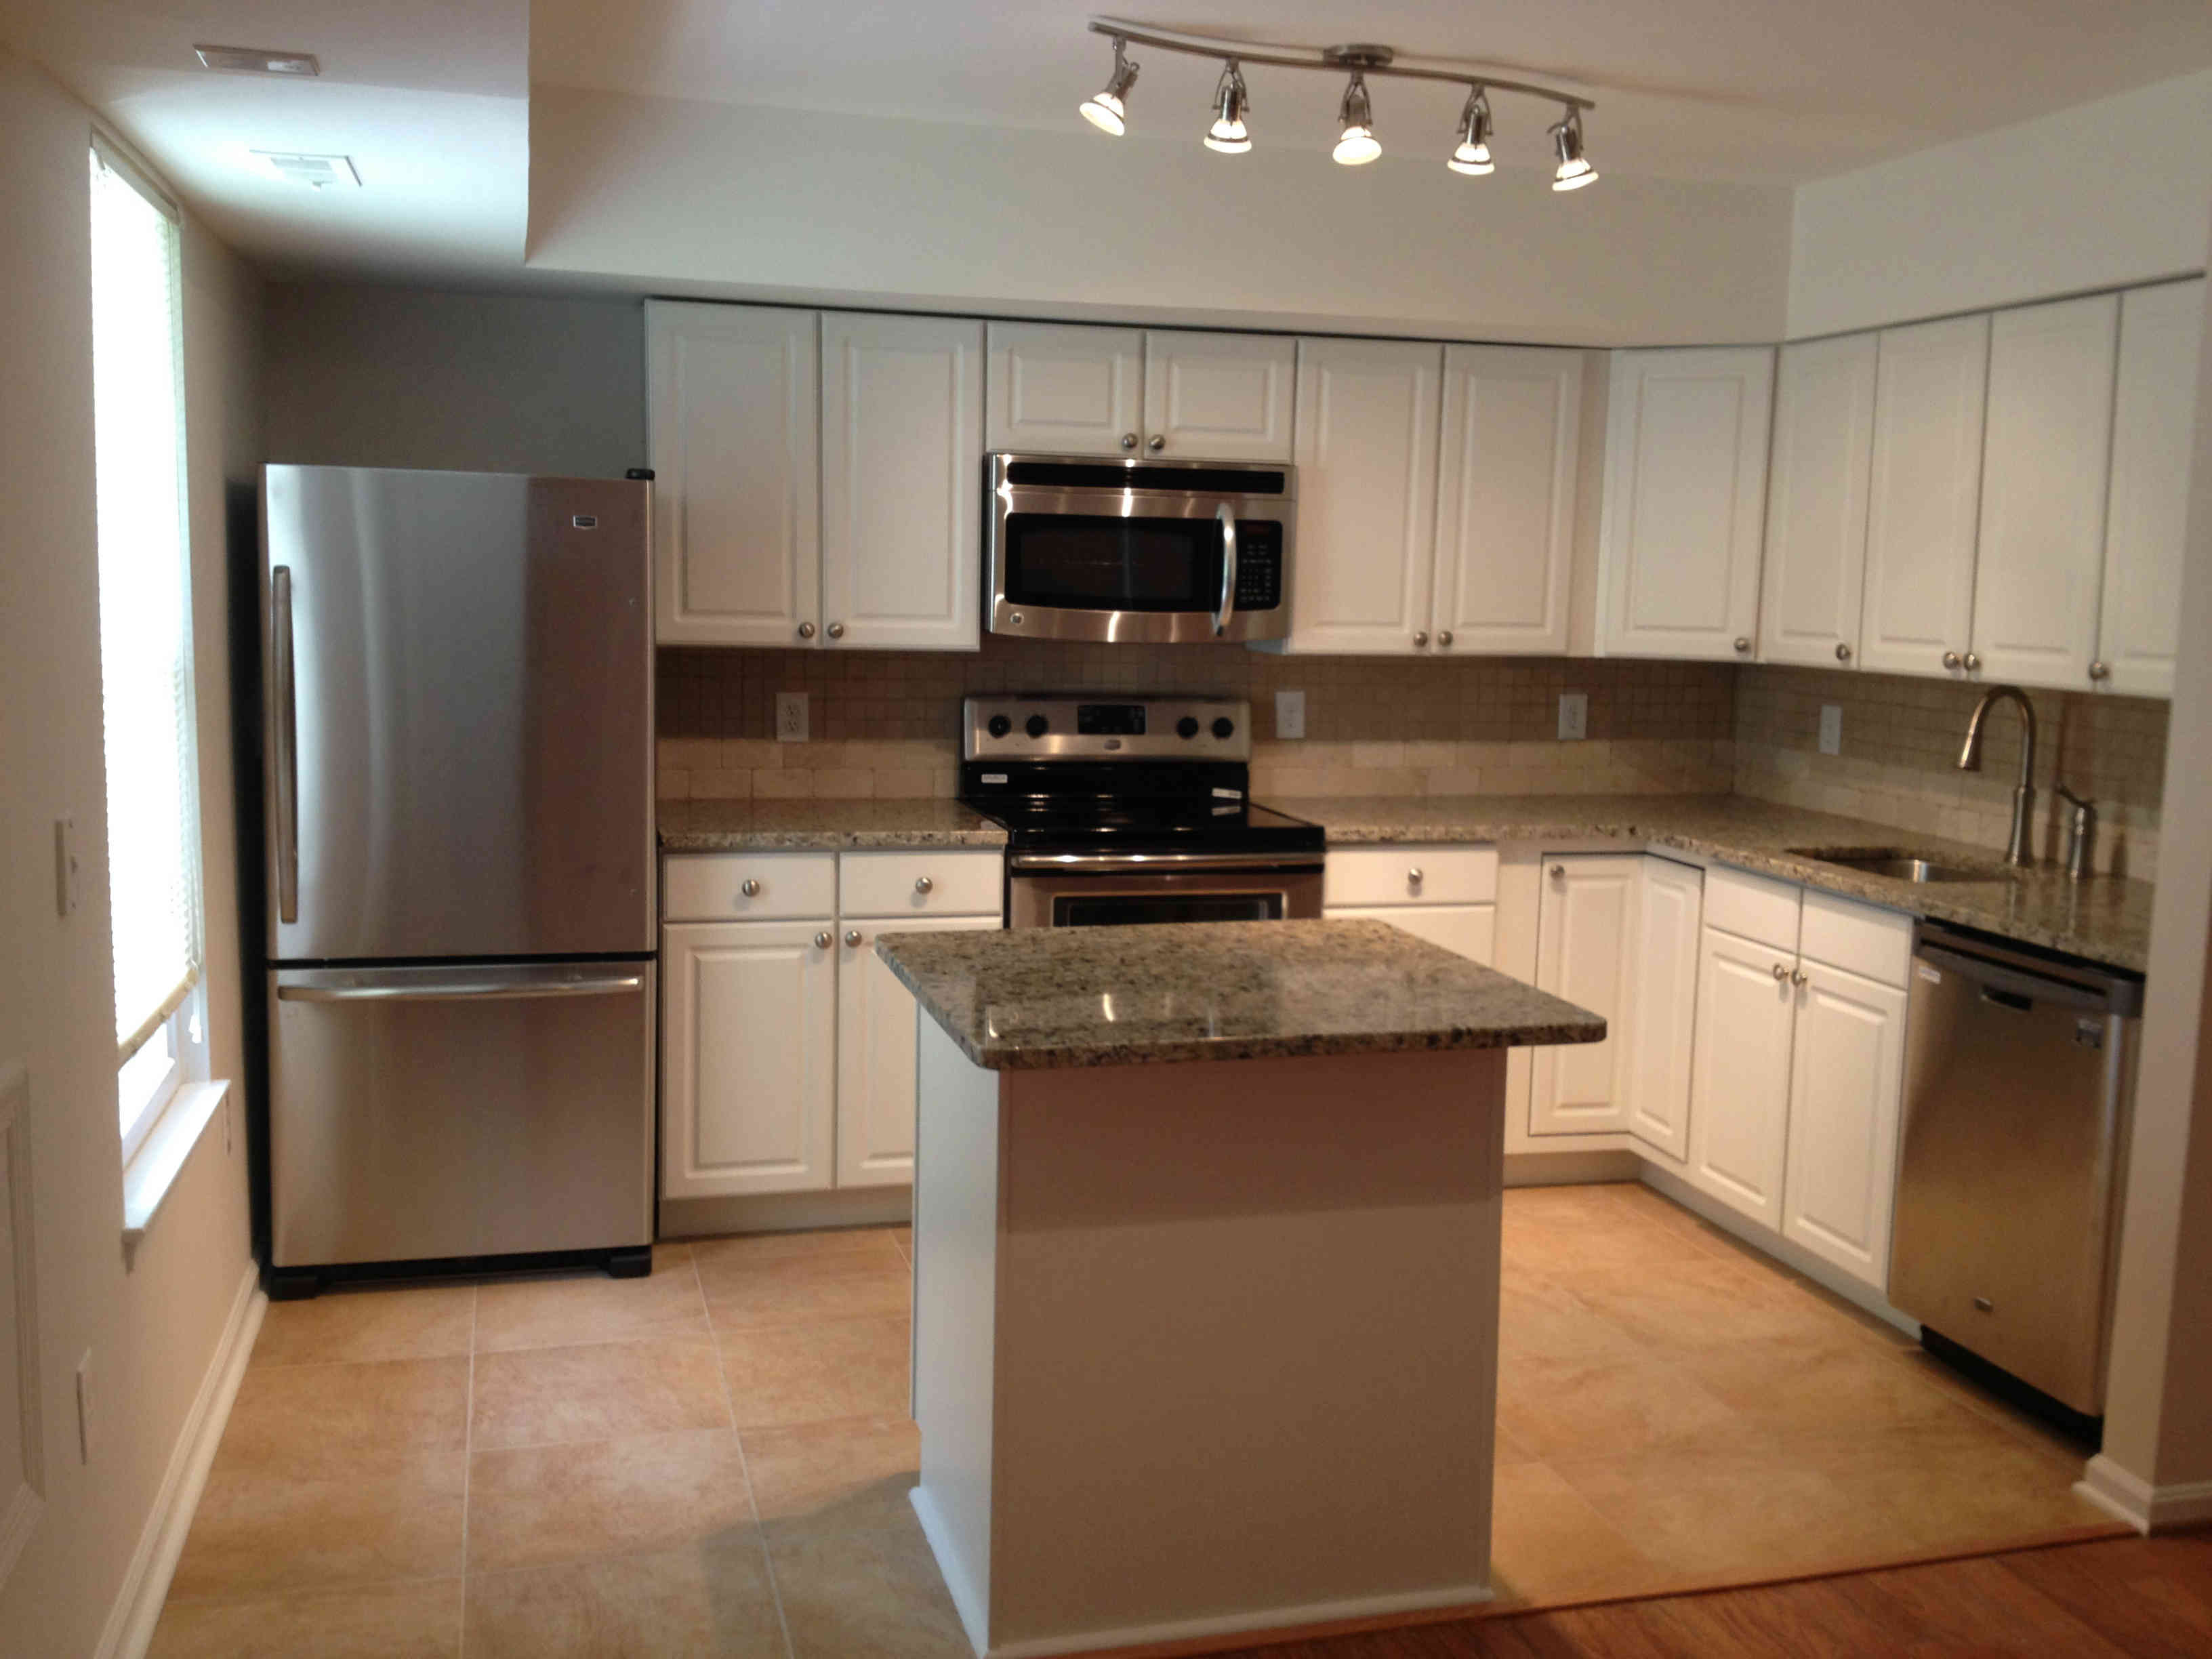 Kitchen Remodeling Bethesda Md Painting Glamorous Kitchen Remodeling In Washington Dc & Bethesda Md  Melness . Review